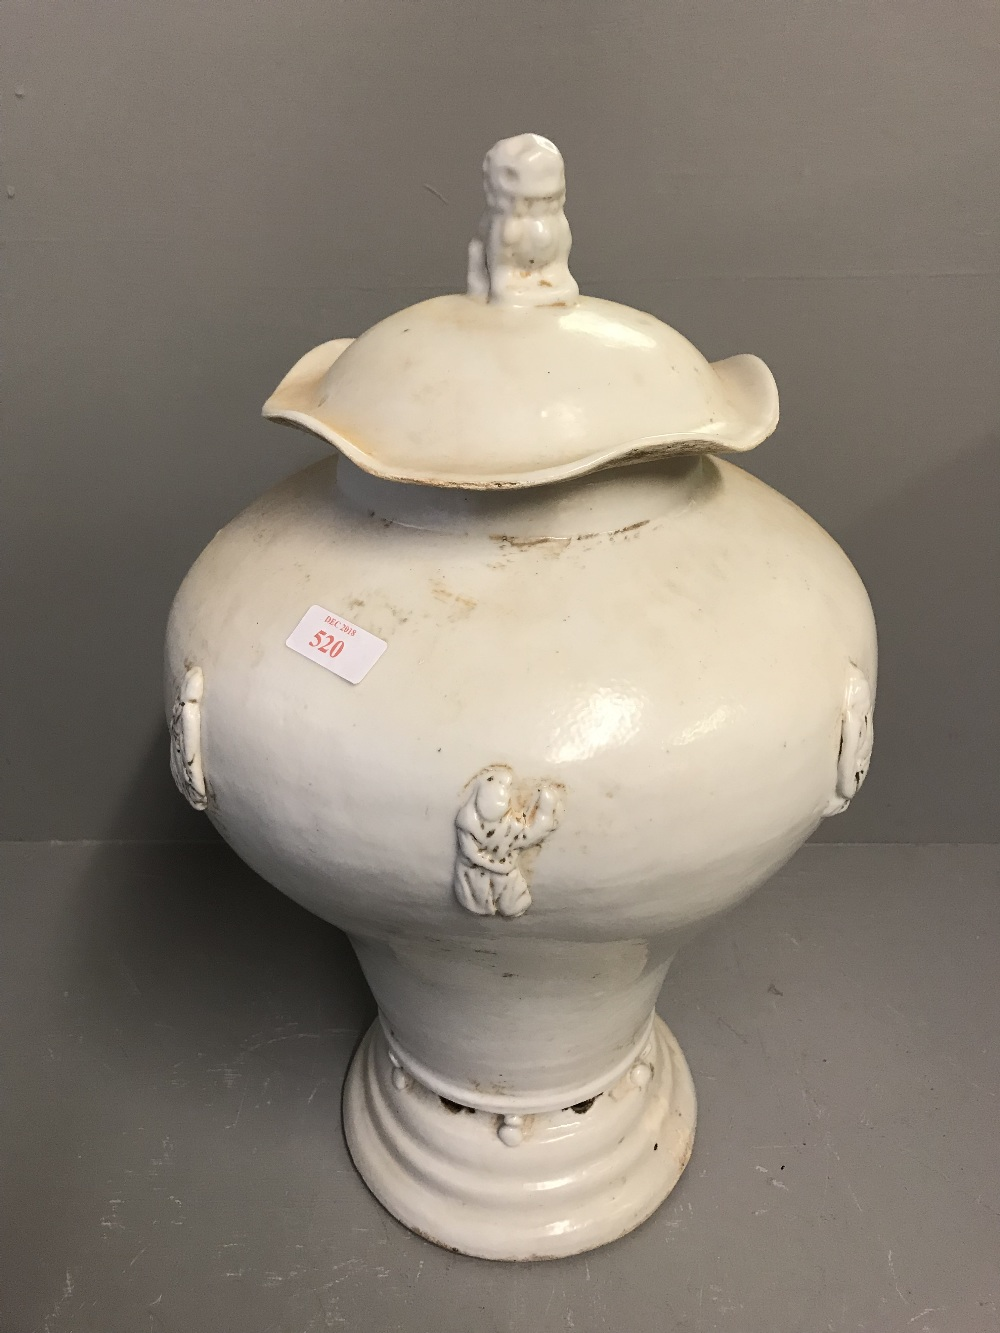 Lot 103 - White lidded Chinese urn 50cm H, decorated with figures, the lid topped with a dog of Fo